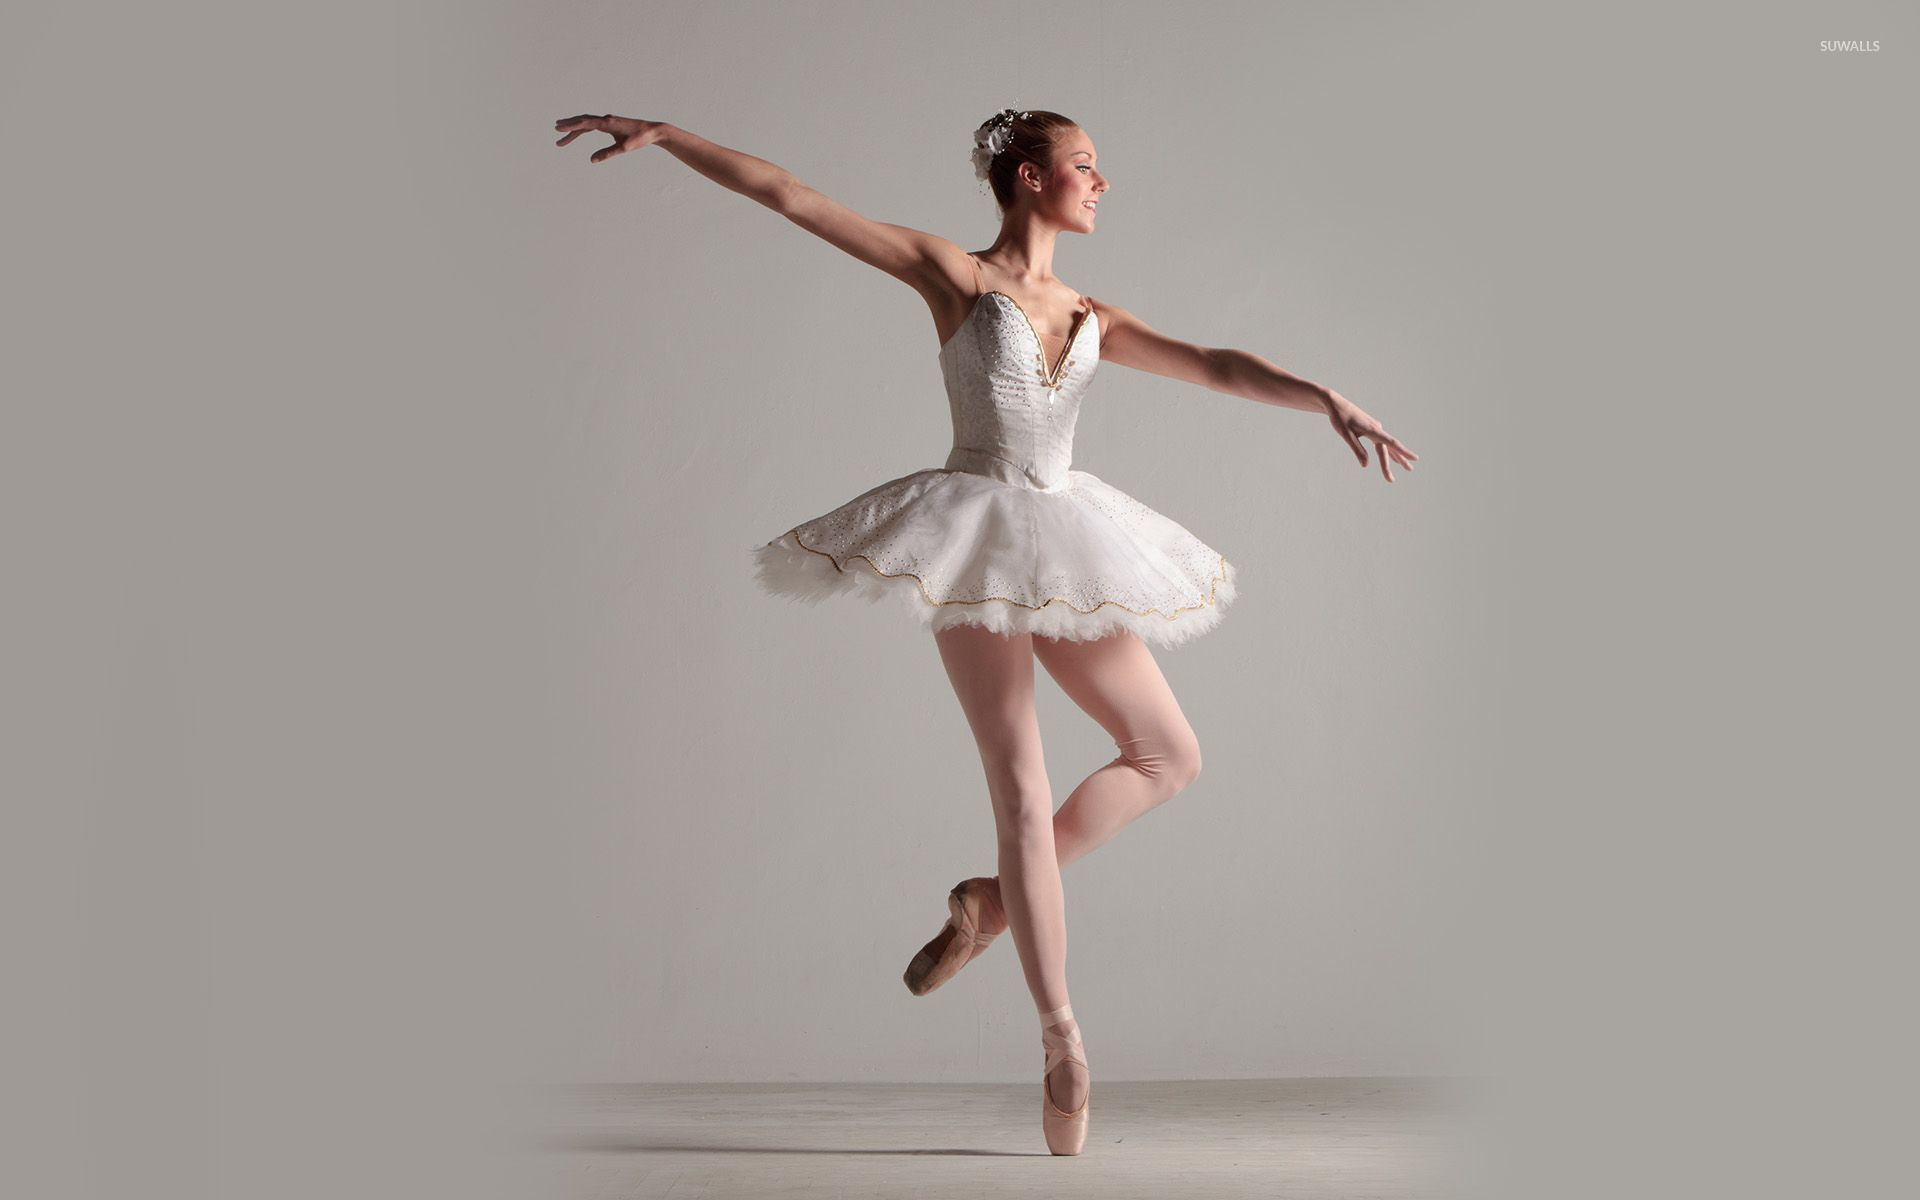 Ballerina wallpaper photography wallpapers 27902 ballerina wallpaper voltagebd